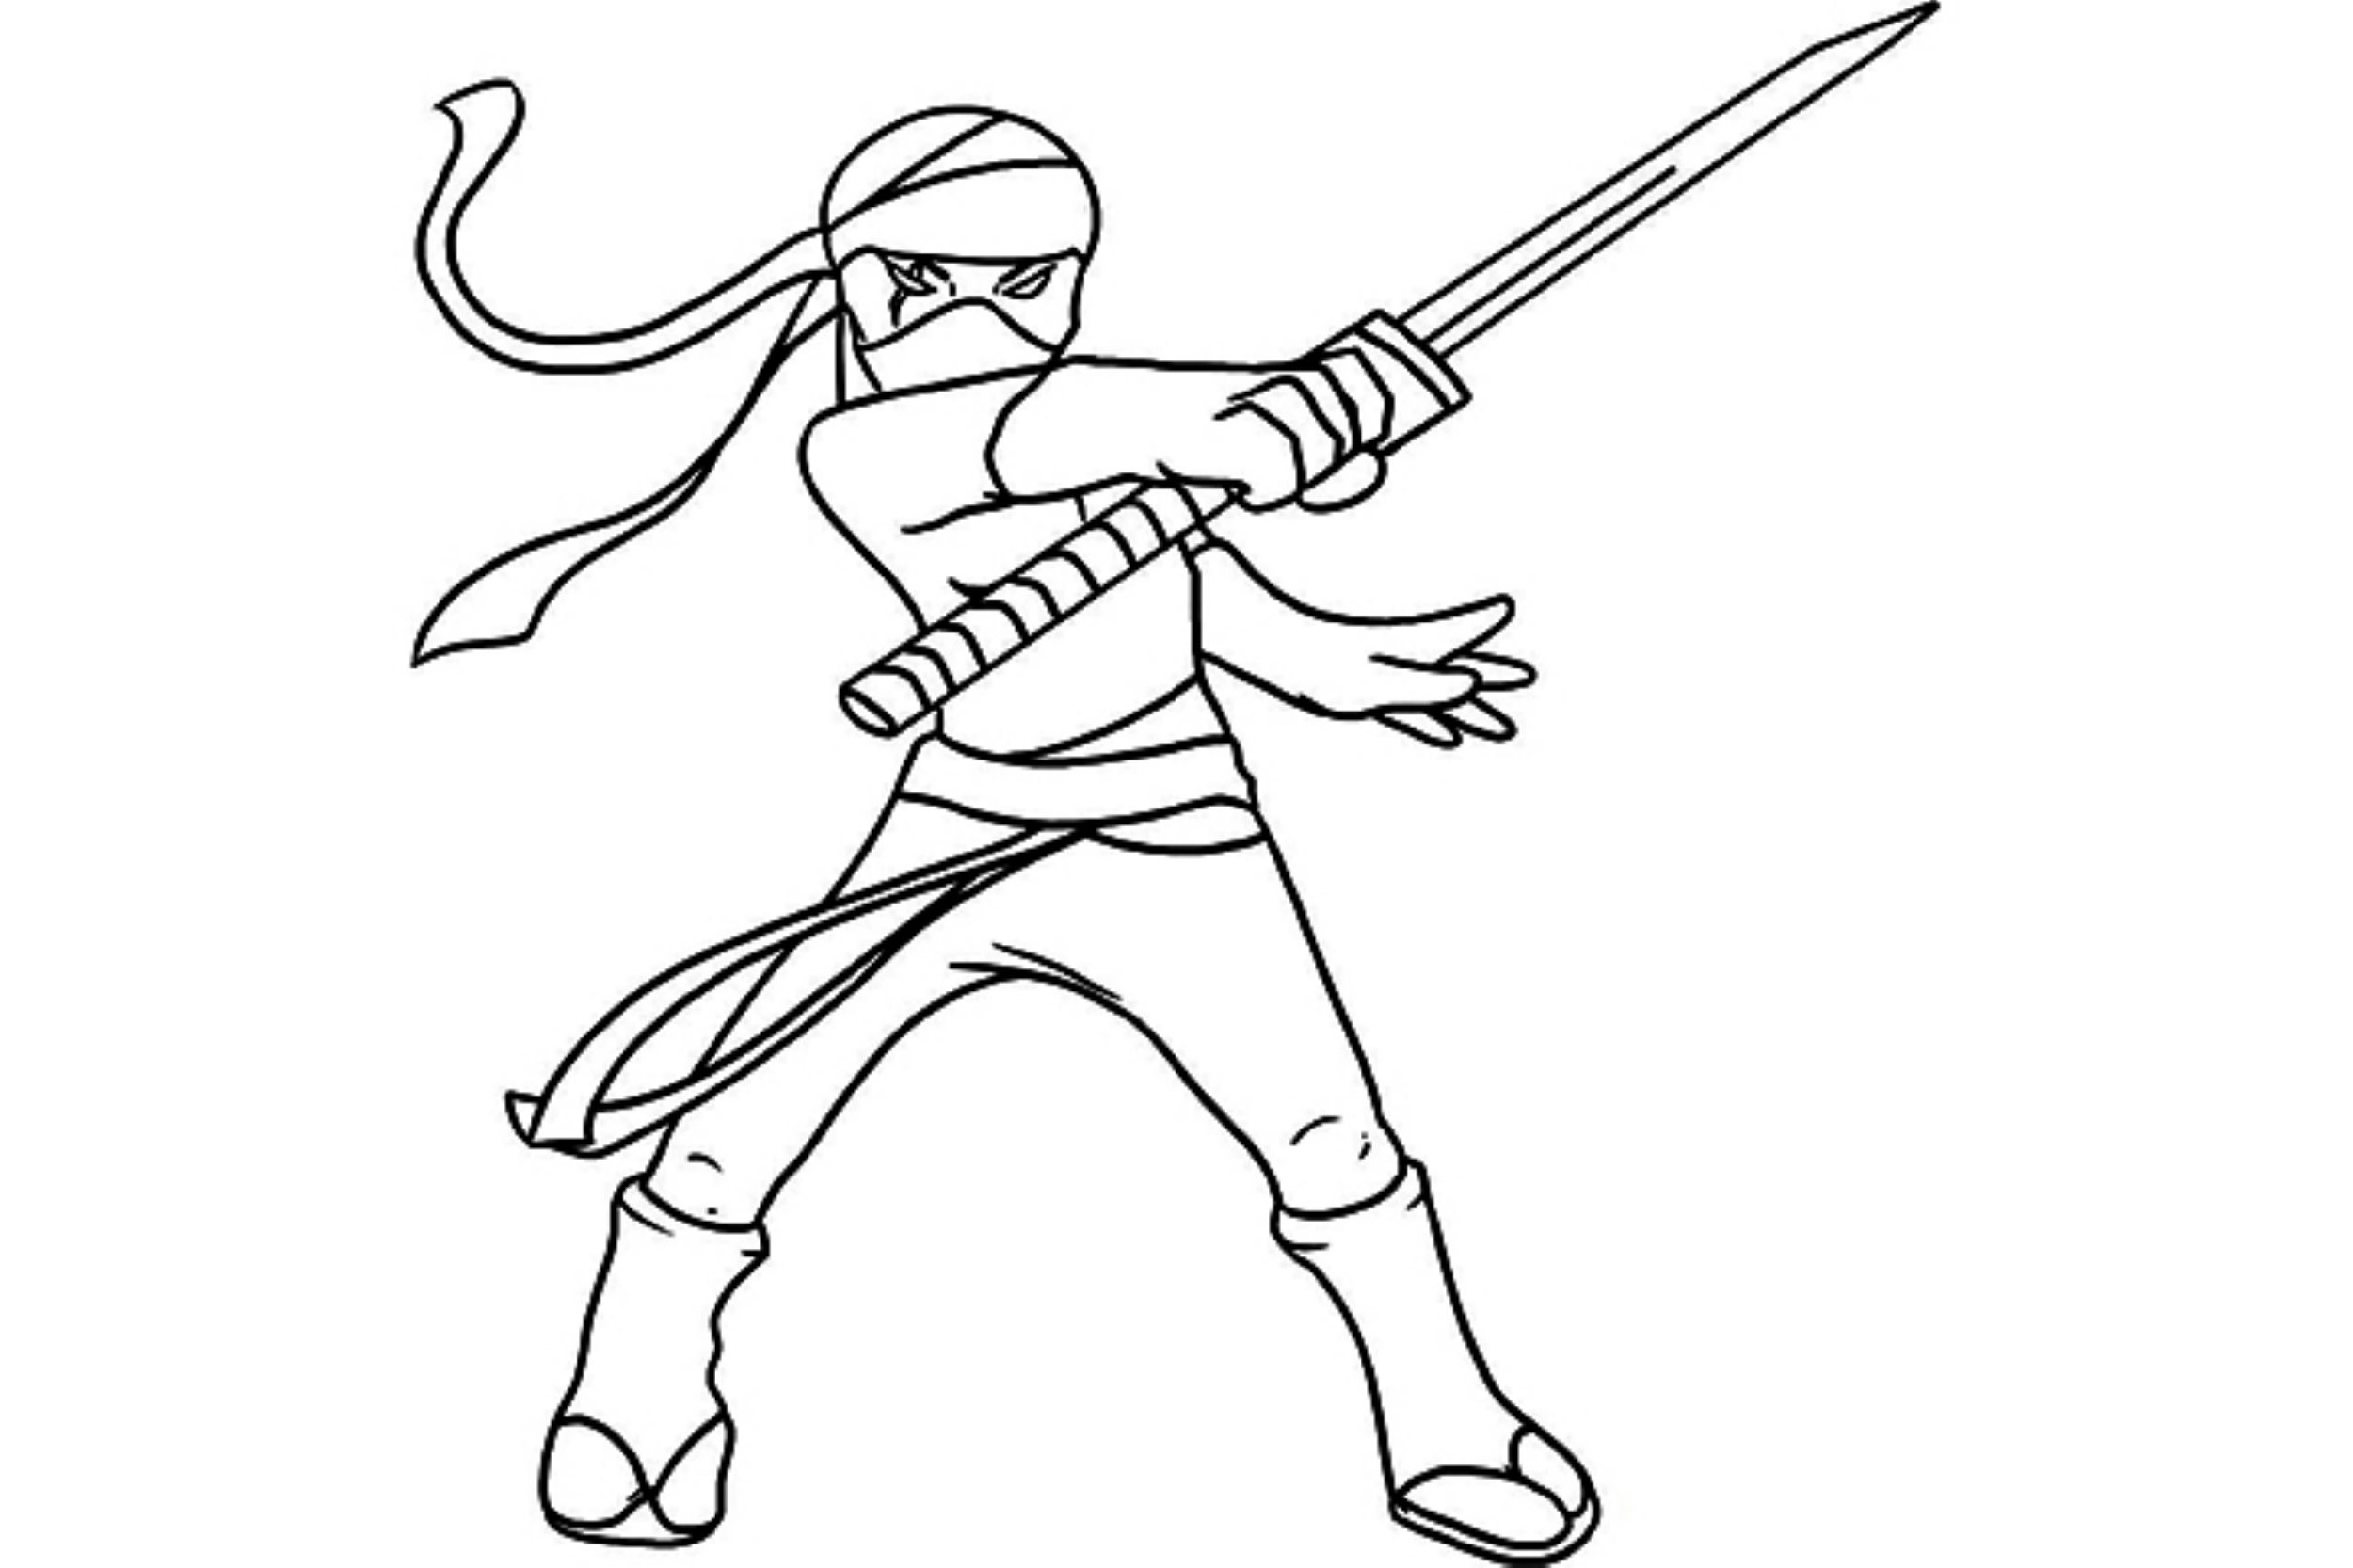 Ninja Coloring Pages For Kids Downloadable